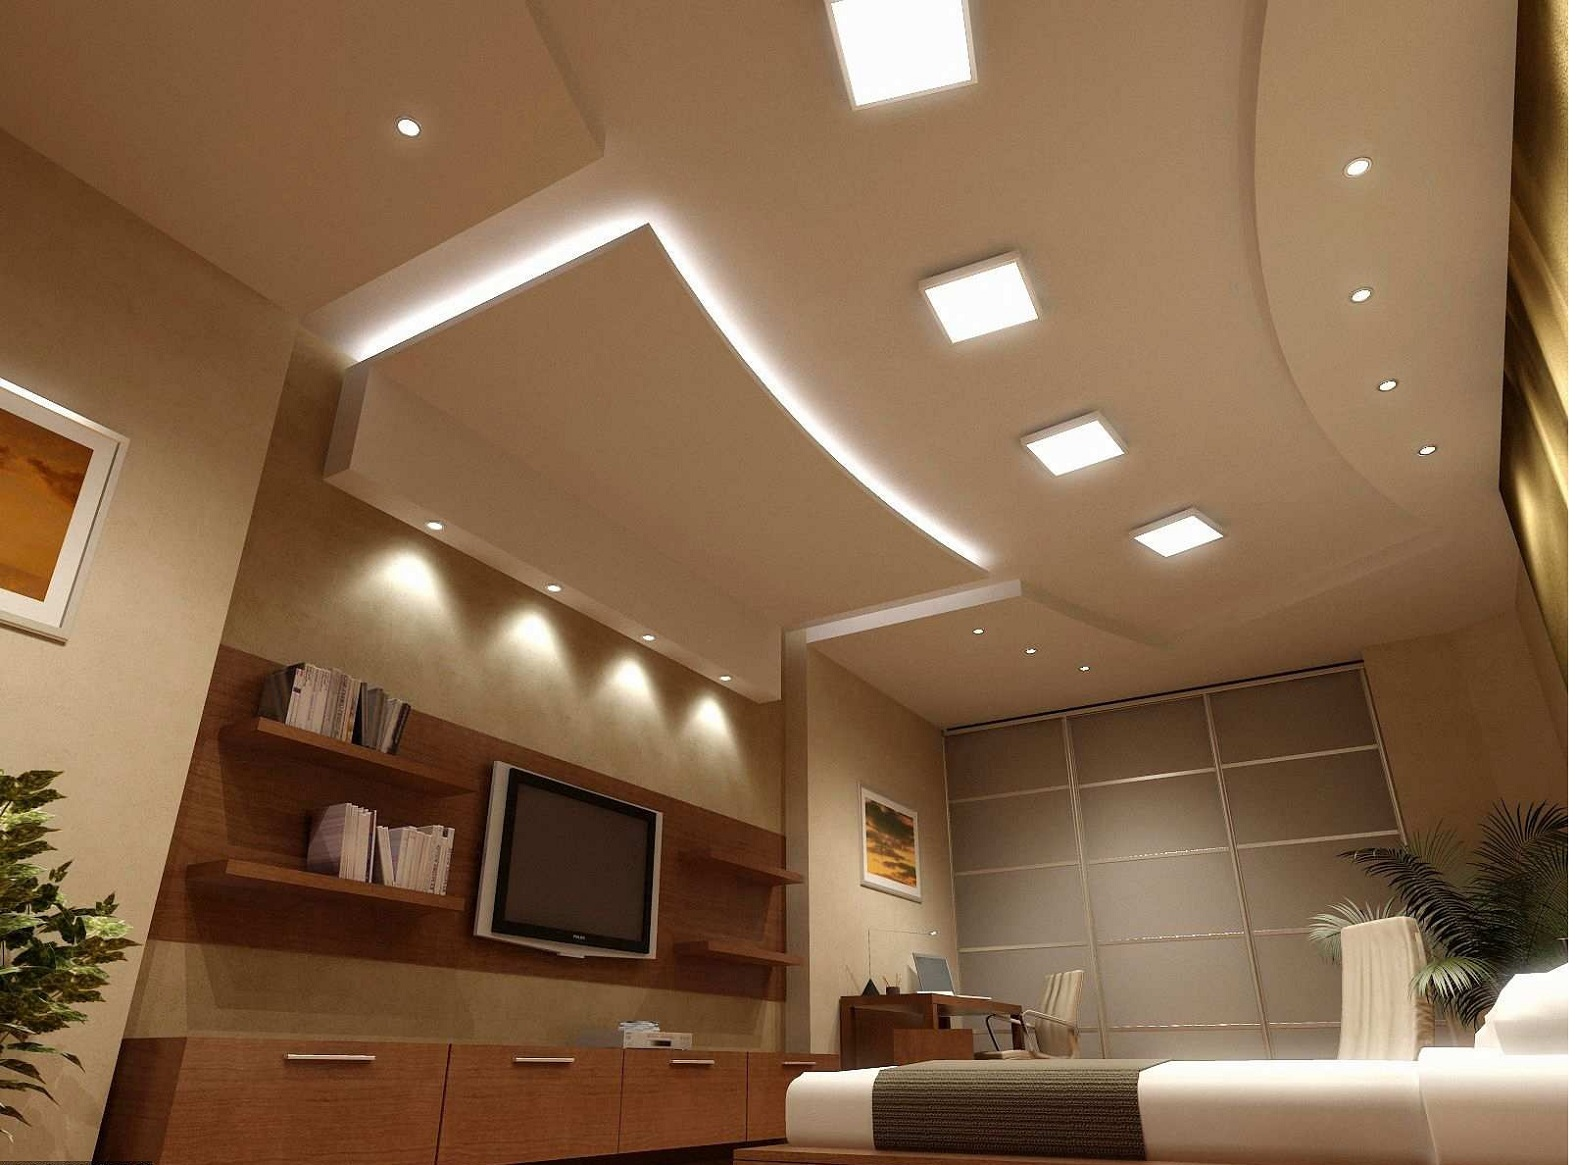 ceiling lights for bedroom. Home design  Pleasing White Recessed Lighting With Curved Dropped Ceiling Style Plus Wooden Bedroom Wall